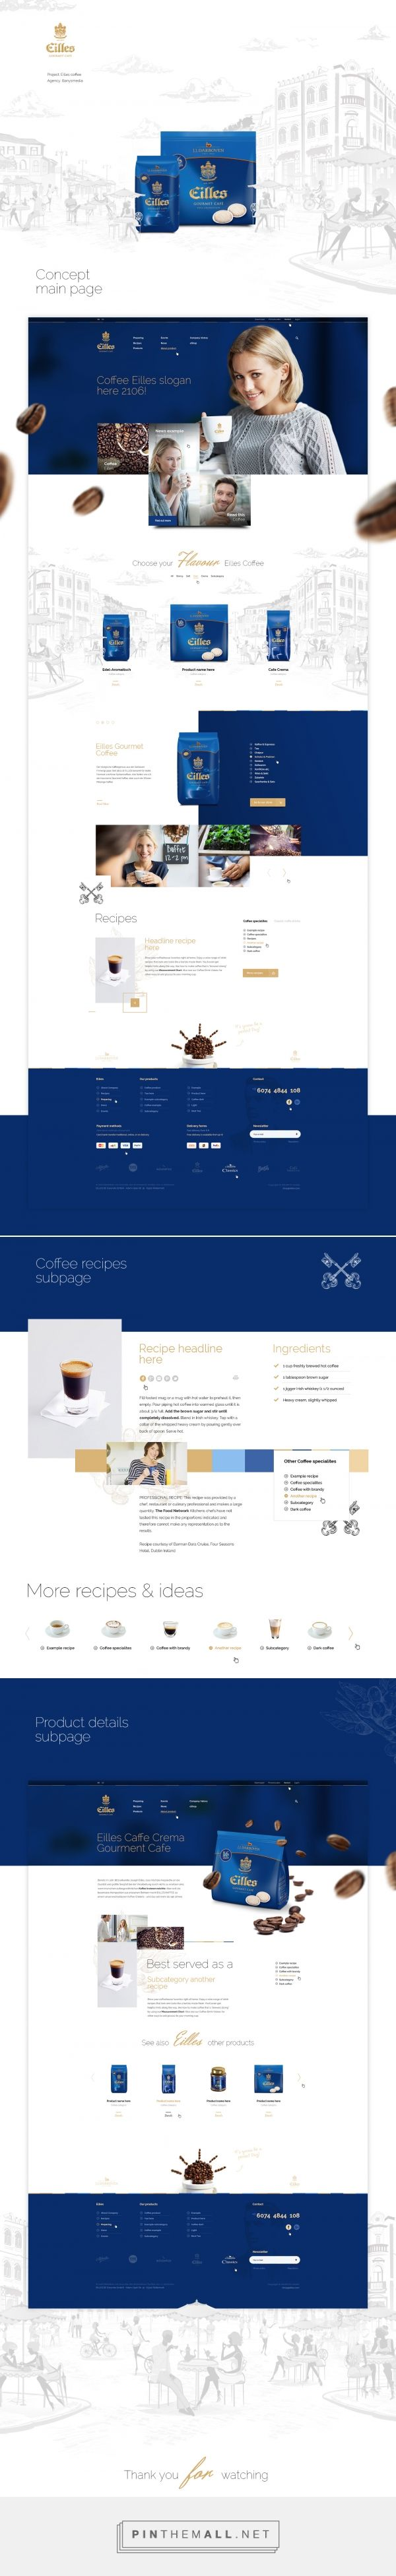 Eilles Coffee on Behance - created via https://pinthemall.net